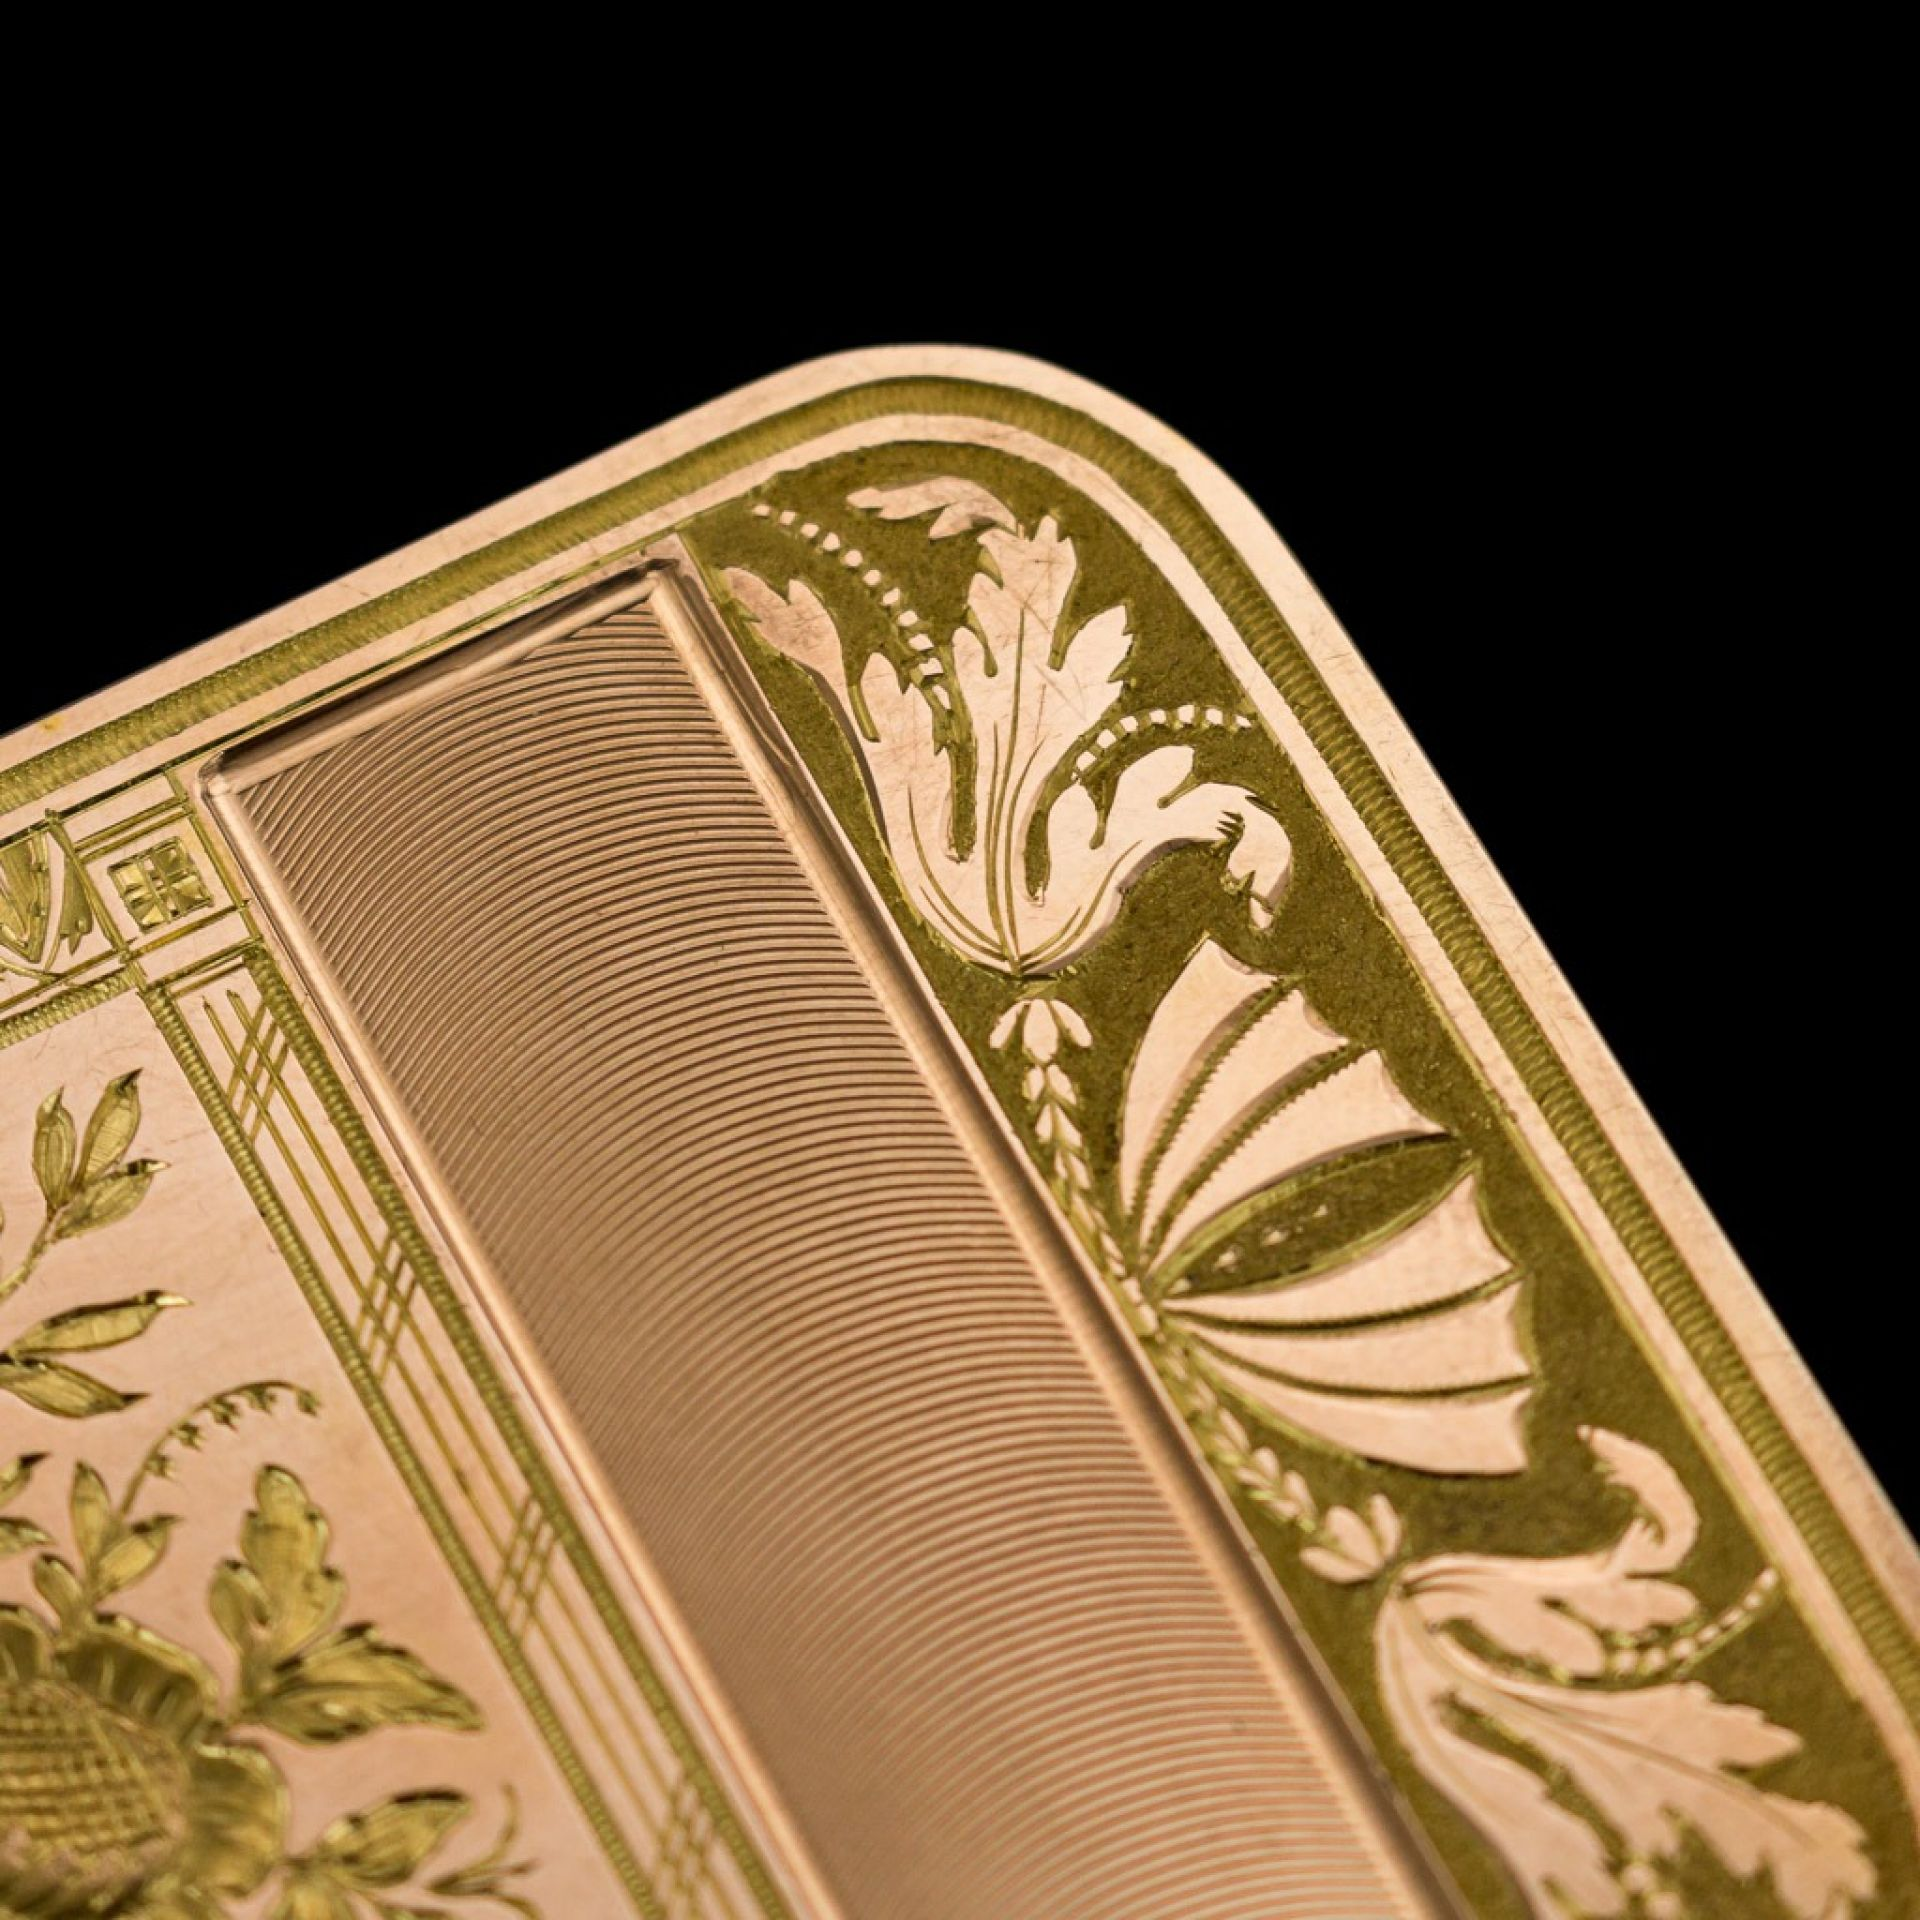 ANTIQUE 19thC CONTINENTAL 18K TWO-COLOUR GOLD SNUFF BOX c.1820